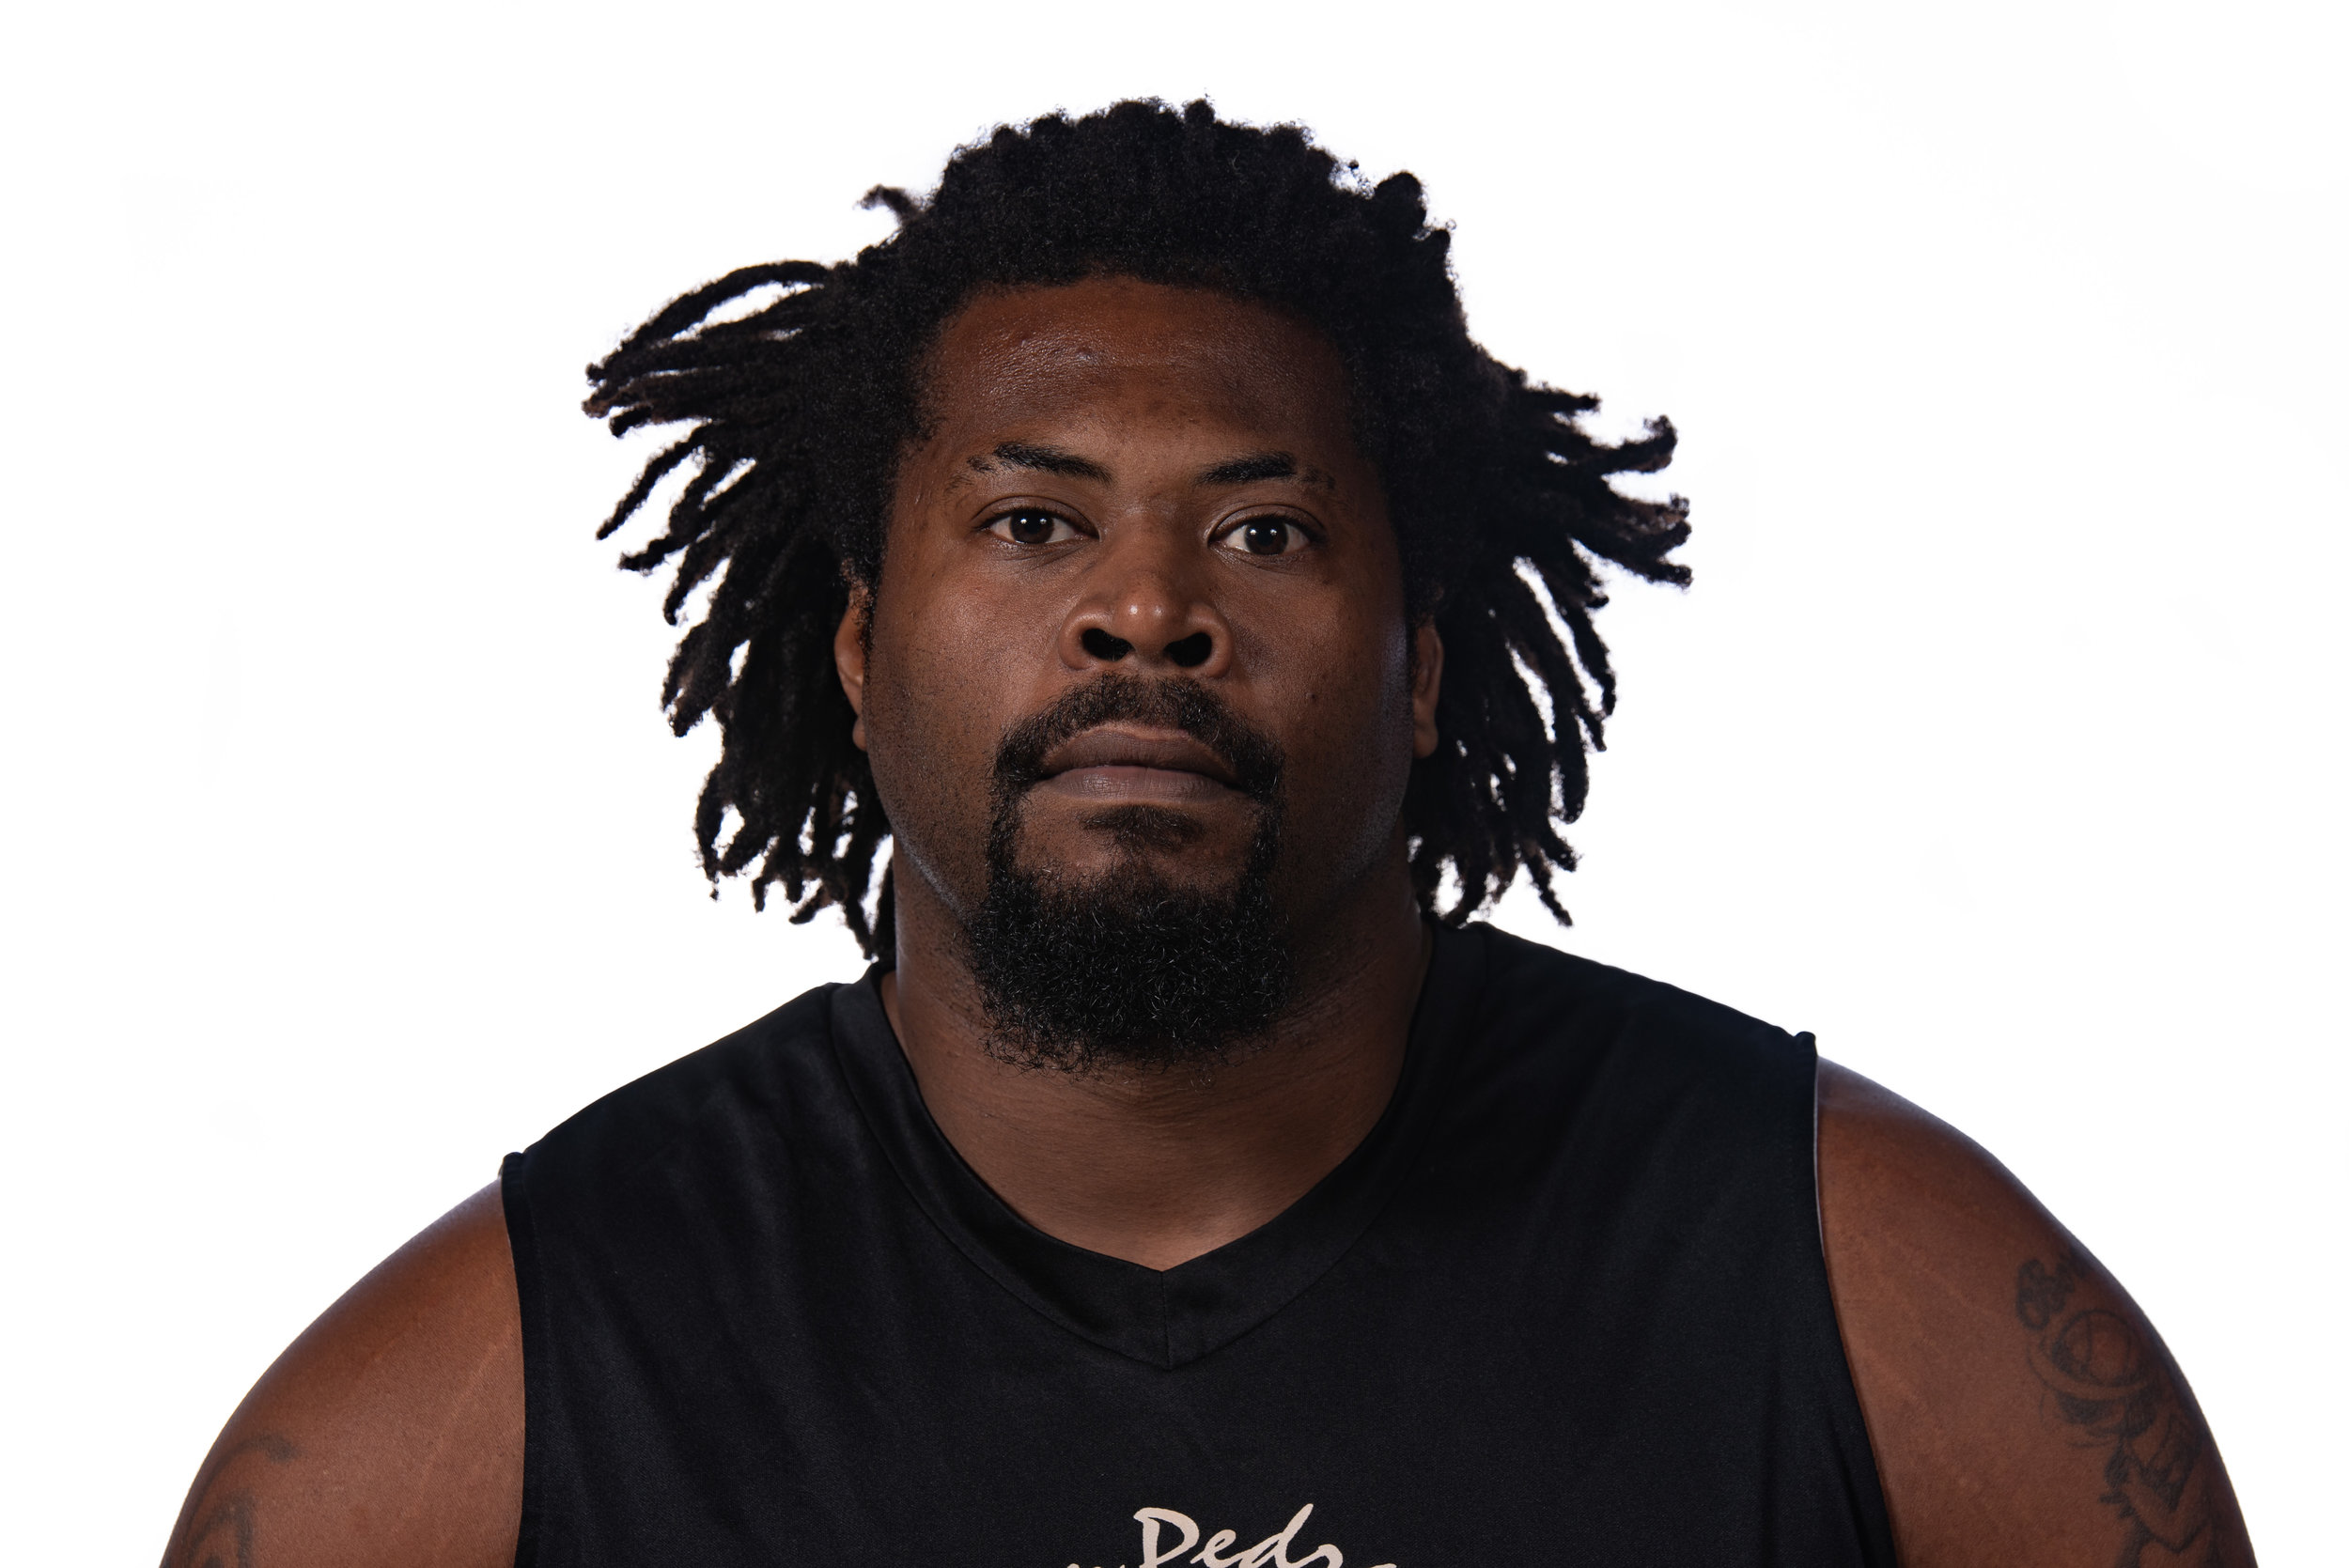 martavius adams - center/power forwardheight: 6'10weight: 265martavius adams, of sparta, ga, is a 2007 state champion with wilkinson country high school before playing as a true freshman with oklahoma state university in the big 12 in the '08-'09 season. martavius then played with arkansas state university in the sunbelt conference where he won first team all conference honors both years. martavius then took his talents to south america: 2 seasons with uruguay montevideo, 2 seasons in the colombia with city Manizales and aremina, a stop in Chile talca, 2 season with bolivia, cochabama, a season in mexico with city zacatecas and badiguato and finally in belize with san pedro.